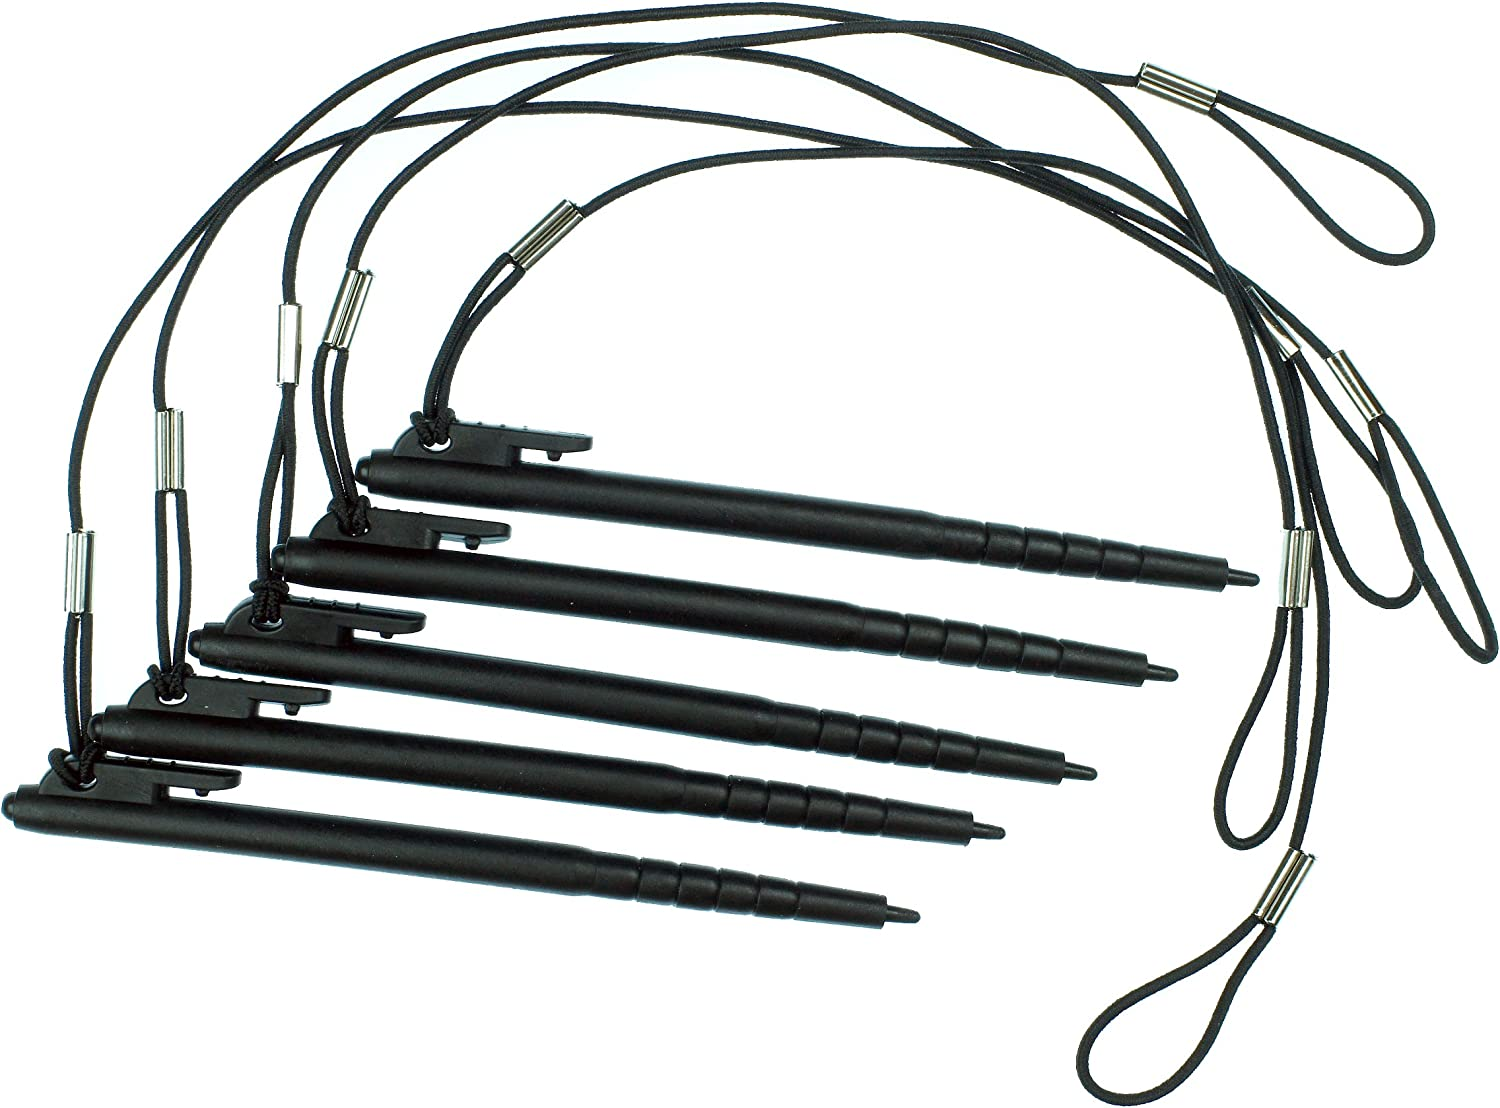 TUSA MC70 / MC75 Tethered Stylus - 5-Pack for Barcode Scanners